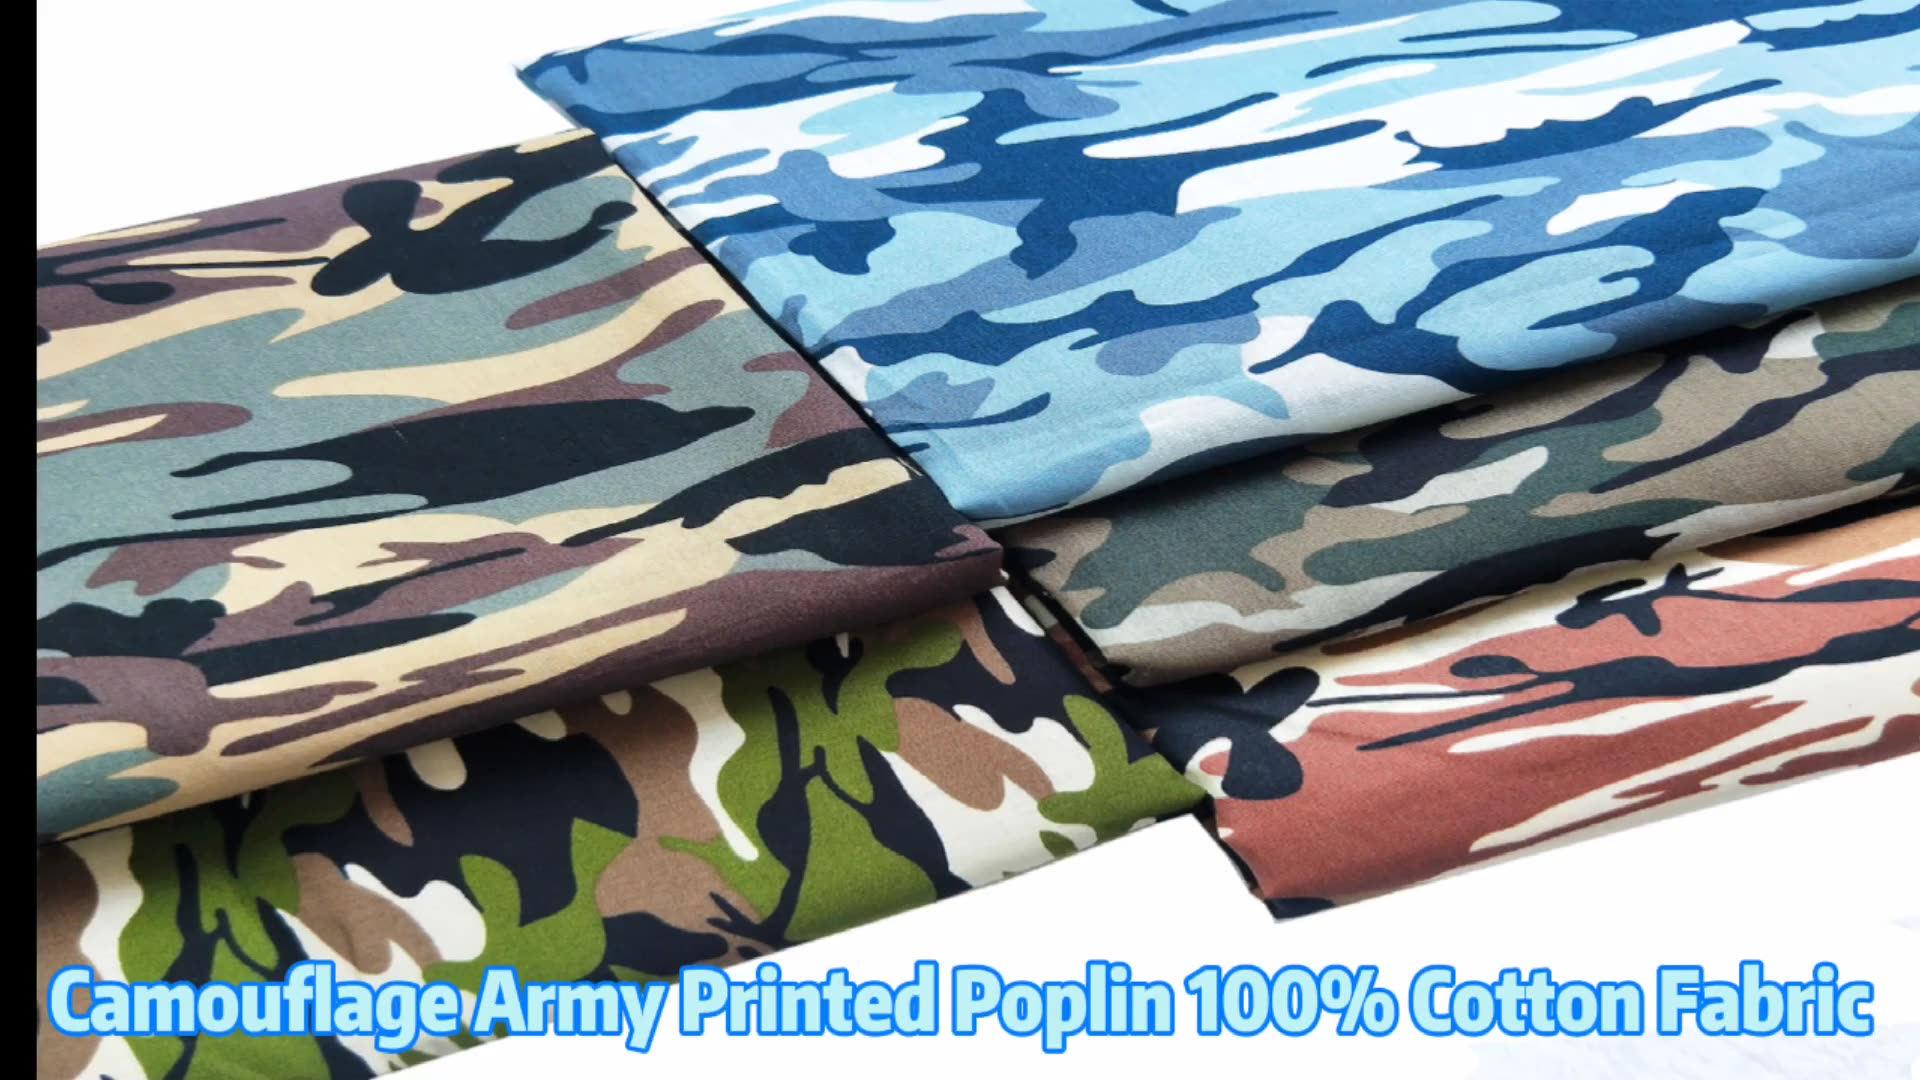 2020 Hot Sale Camouflage Army Printed Poplin 100% Cotton Fabric Wholesale For Face Mask T Shirts Shorts Scarf